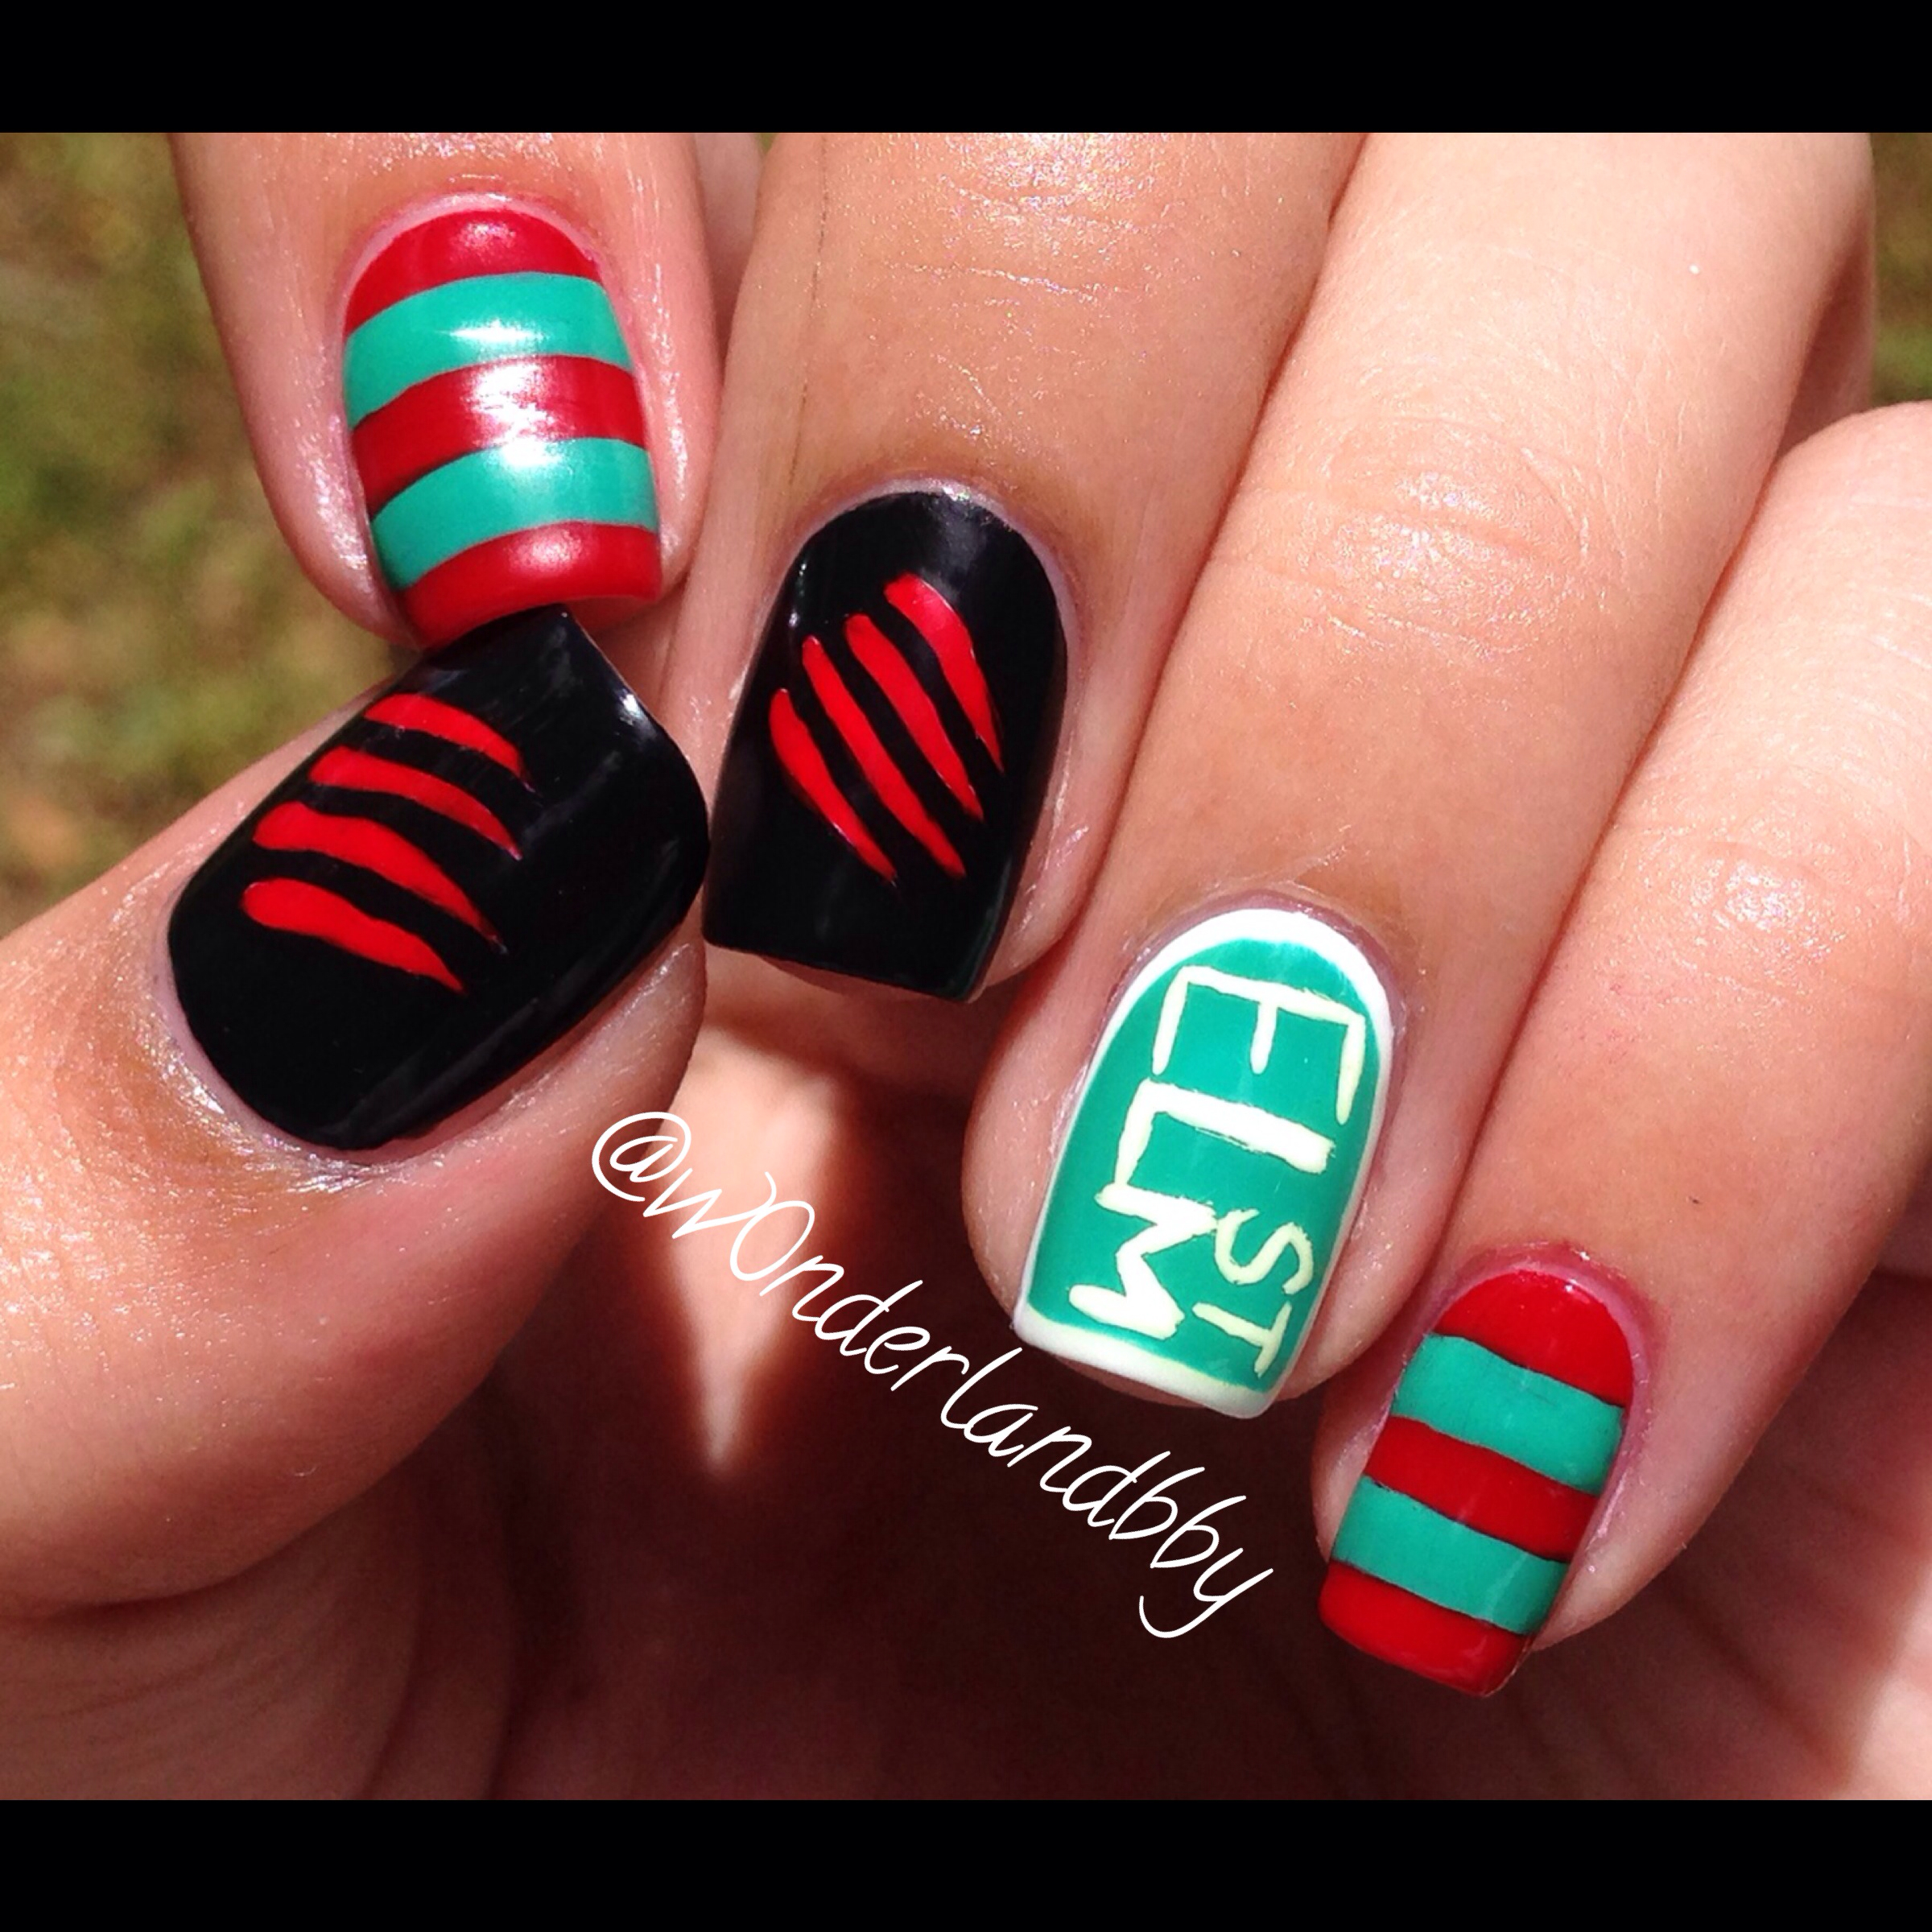 A-Nightmare-on-Elm-Street-nail-art-Freddy-Krueger-nail-art-Love-wallpaper-wpc5801876